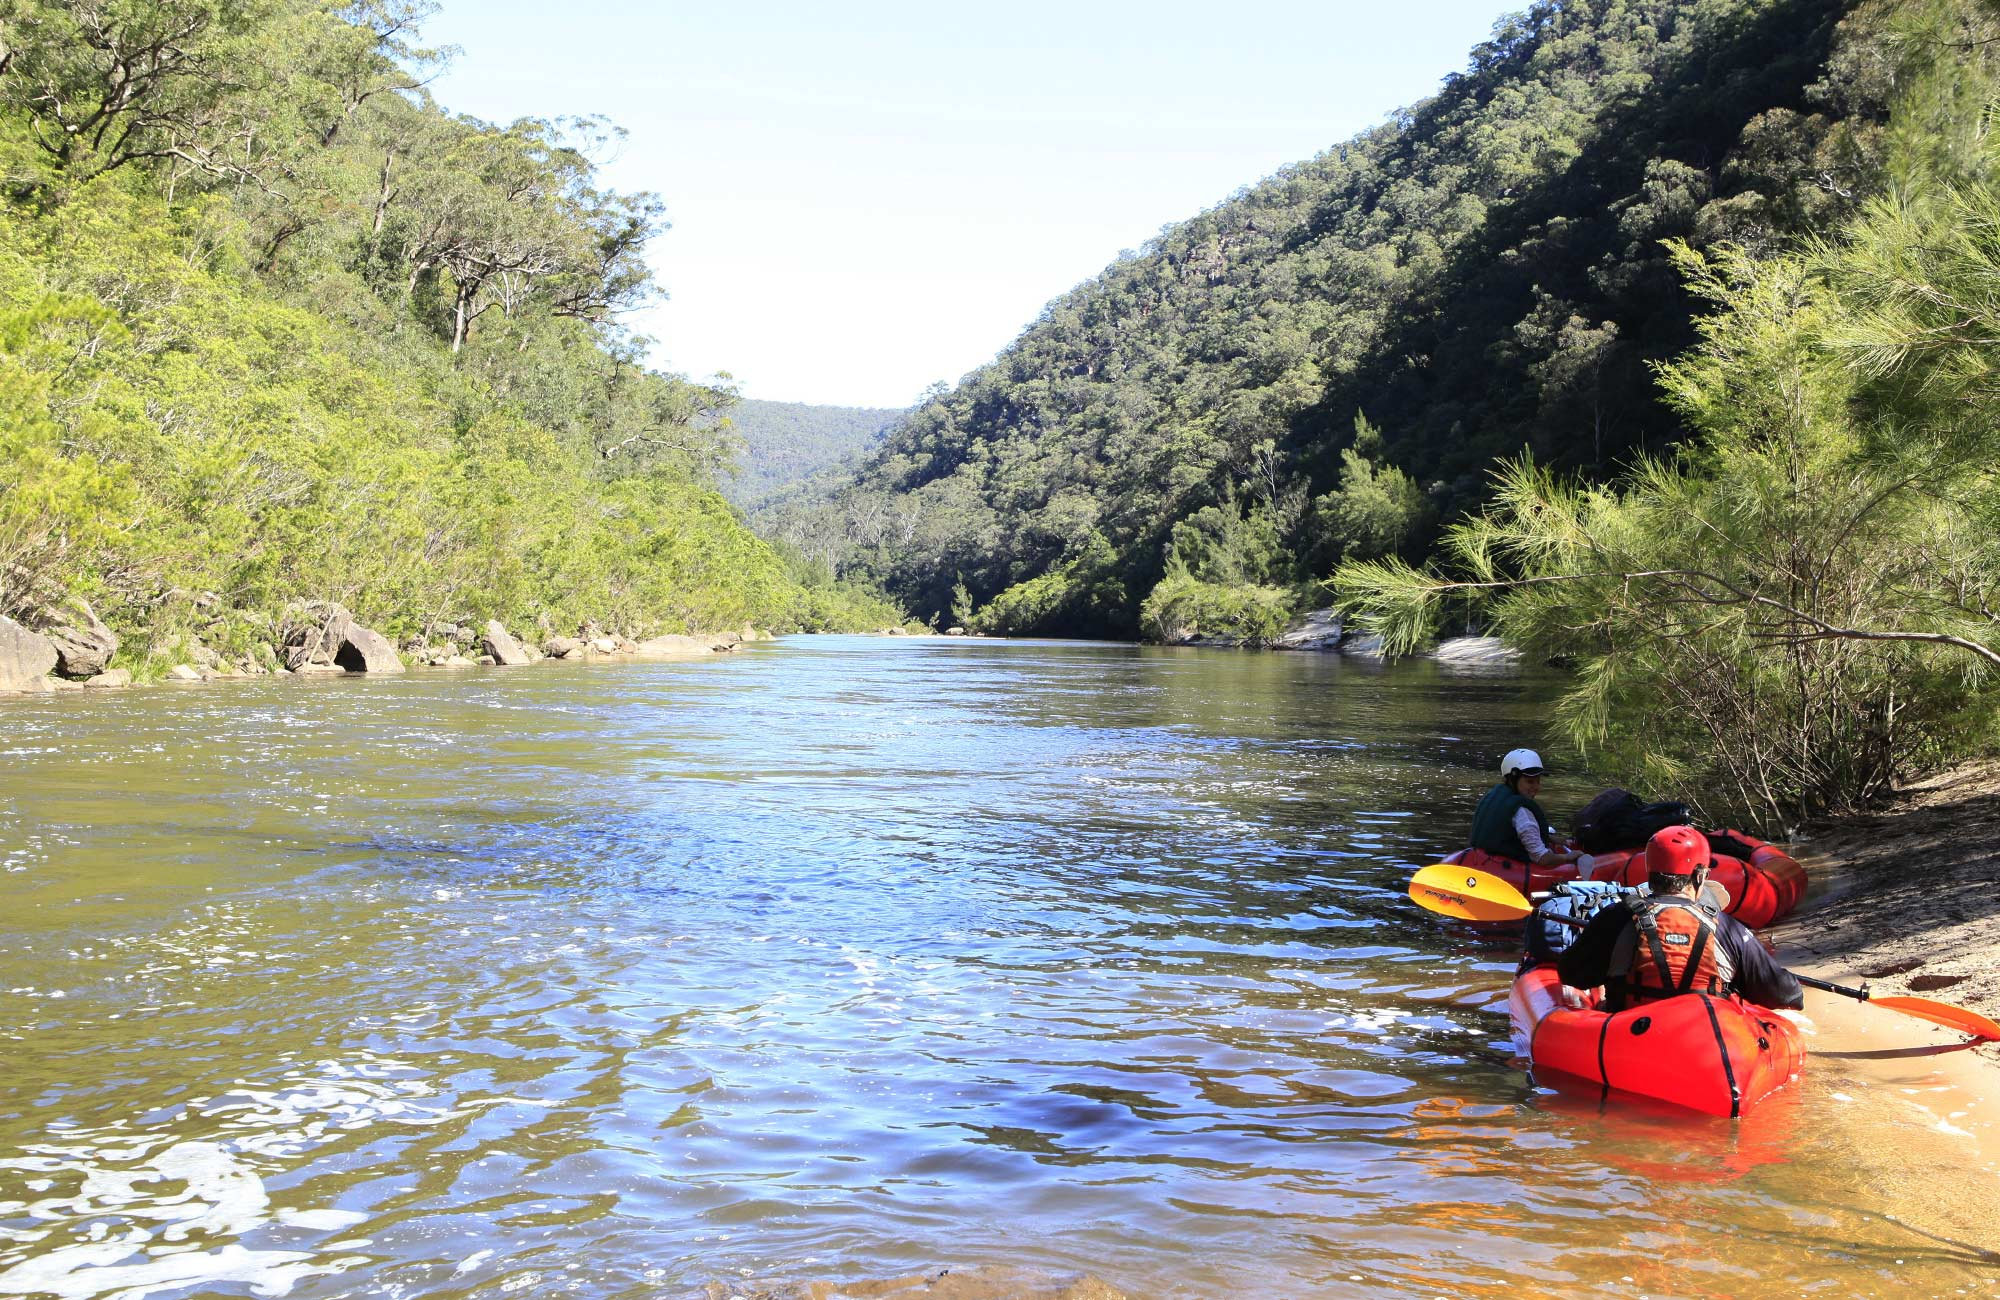 Kayakers on the Colo River, Wollemi National Park. Photo: Rosie Nicolai.